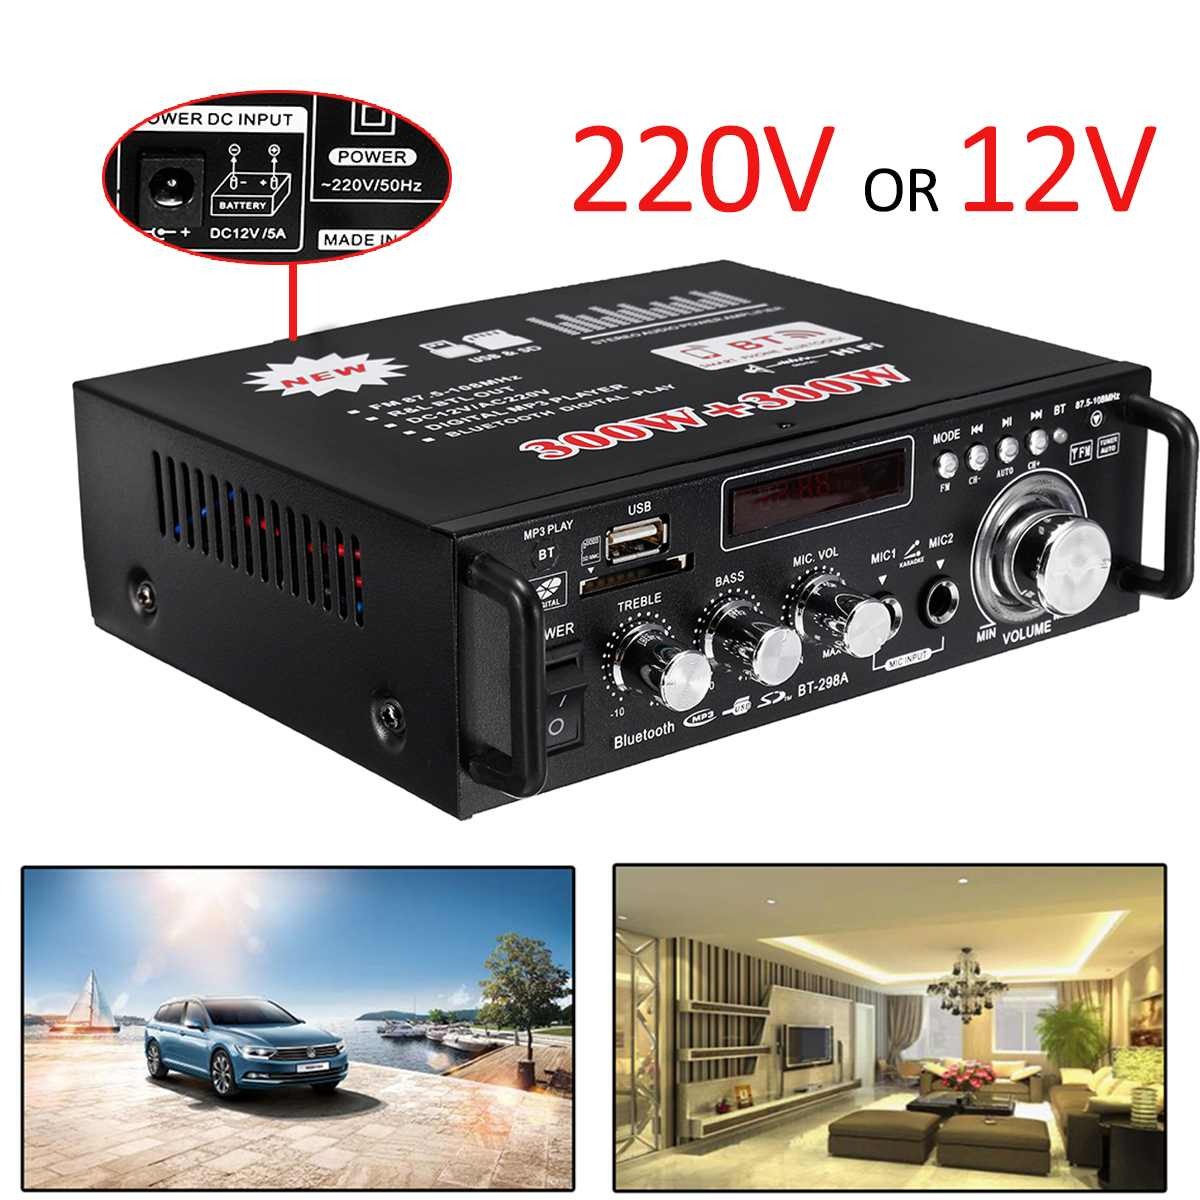 12V 220V 2CH 600W LCD Display Digital HIFI Audio Power Amplifier bluetooth FM Radio Car Home Subwoofer Stereo W/ Remote Control